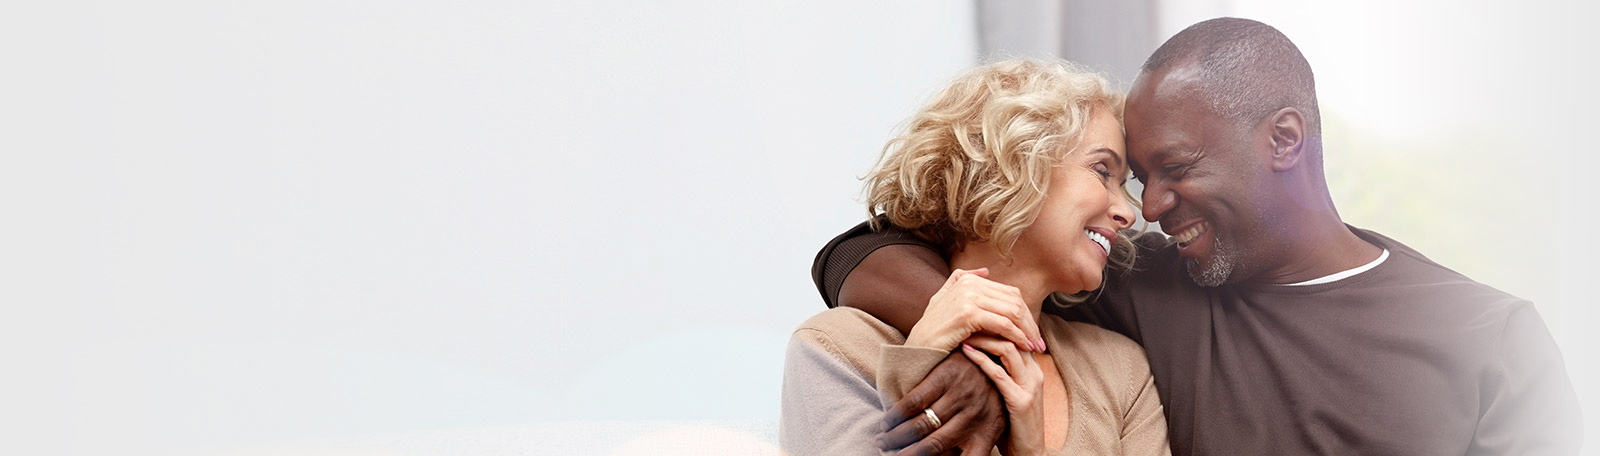 mature interracial couple hugging